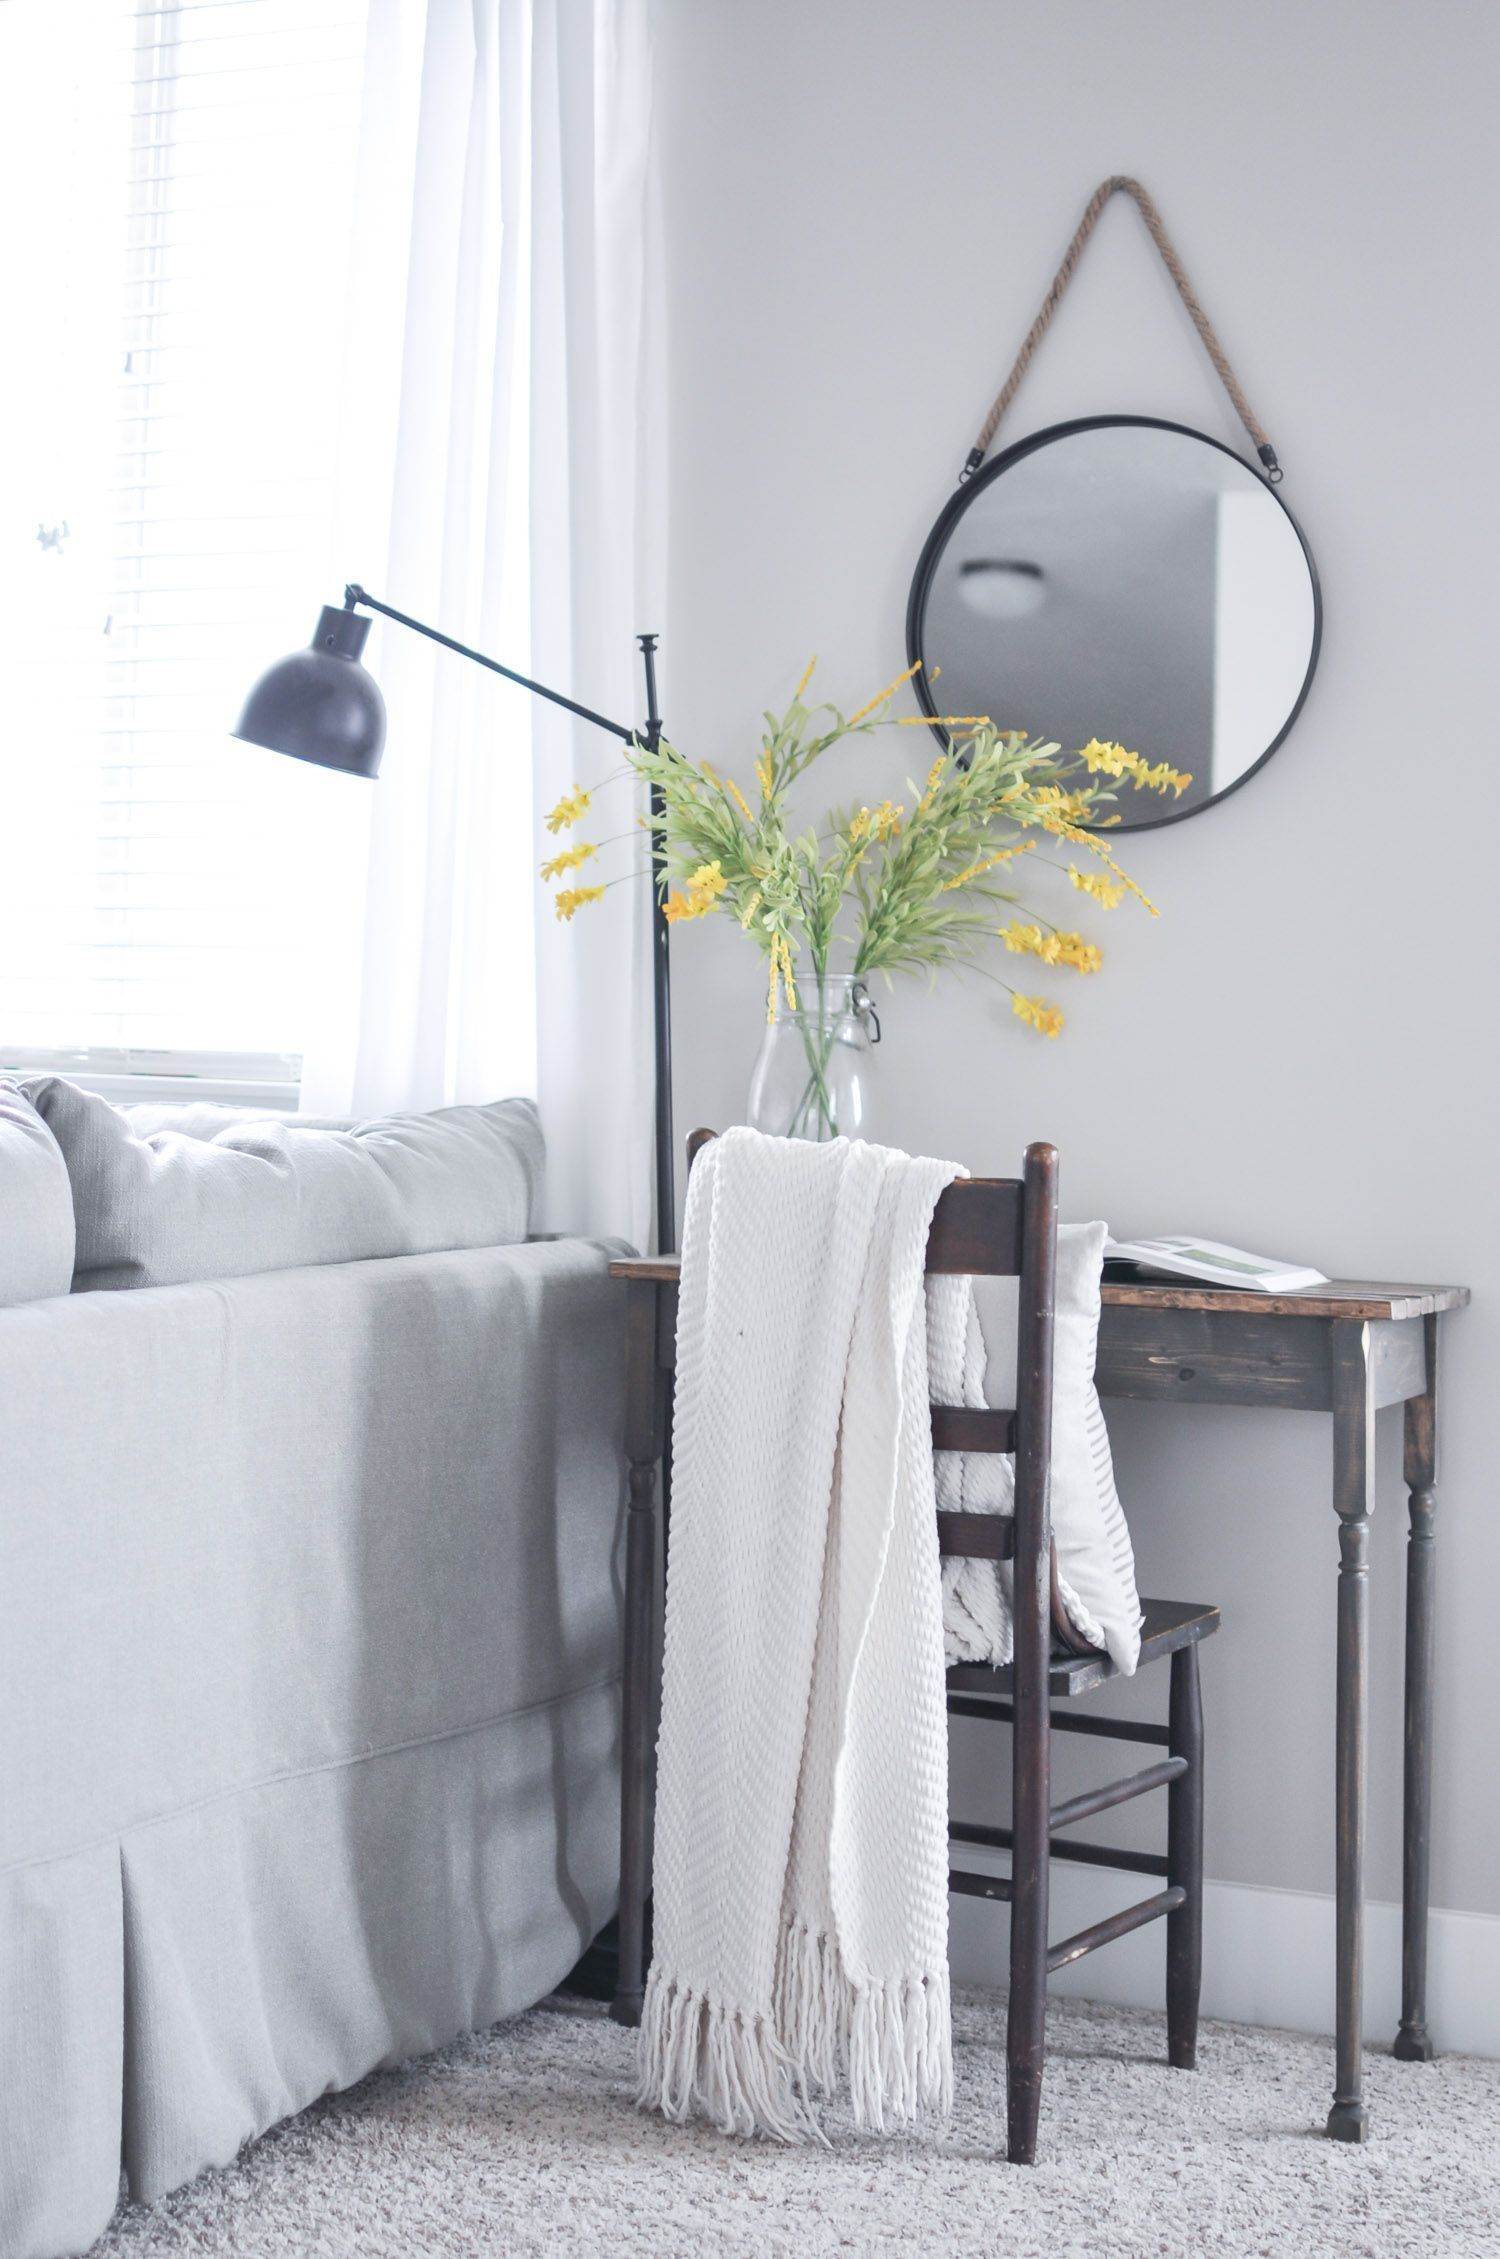 Our home consists of neutral simple and easy to manage decor this